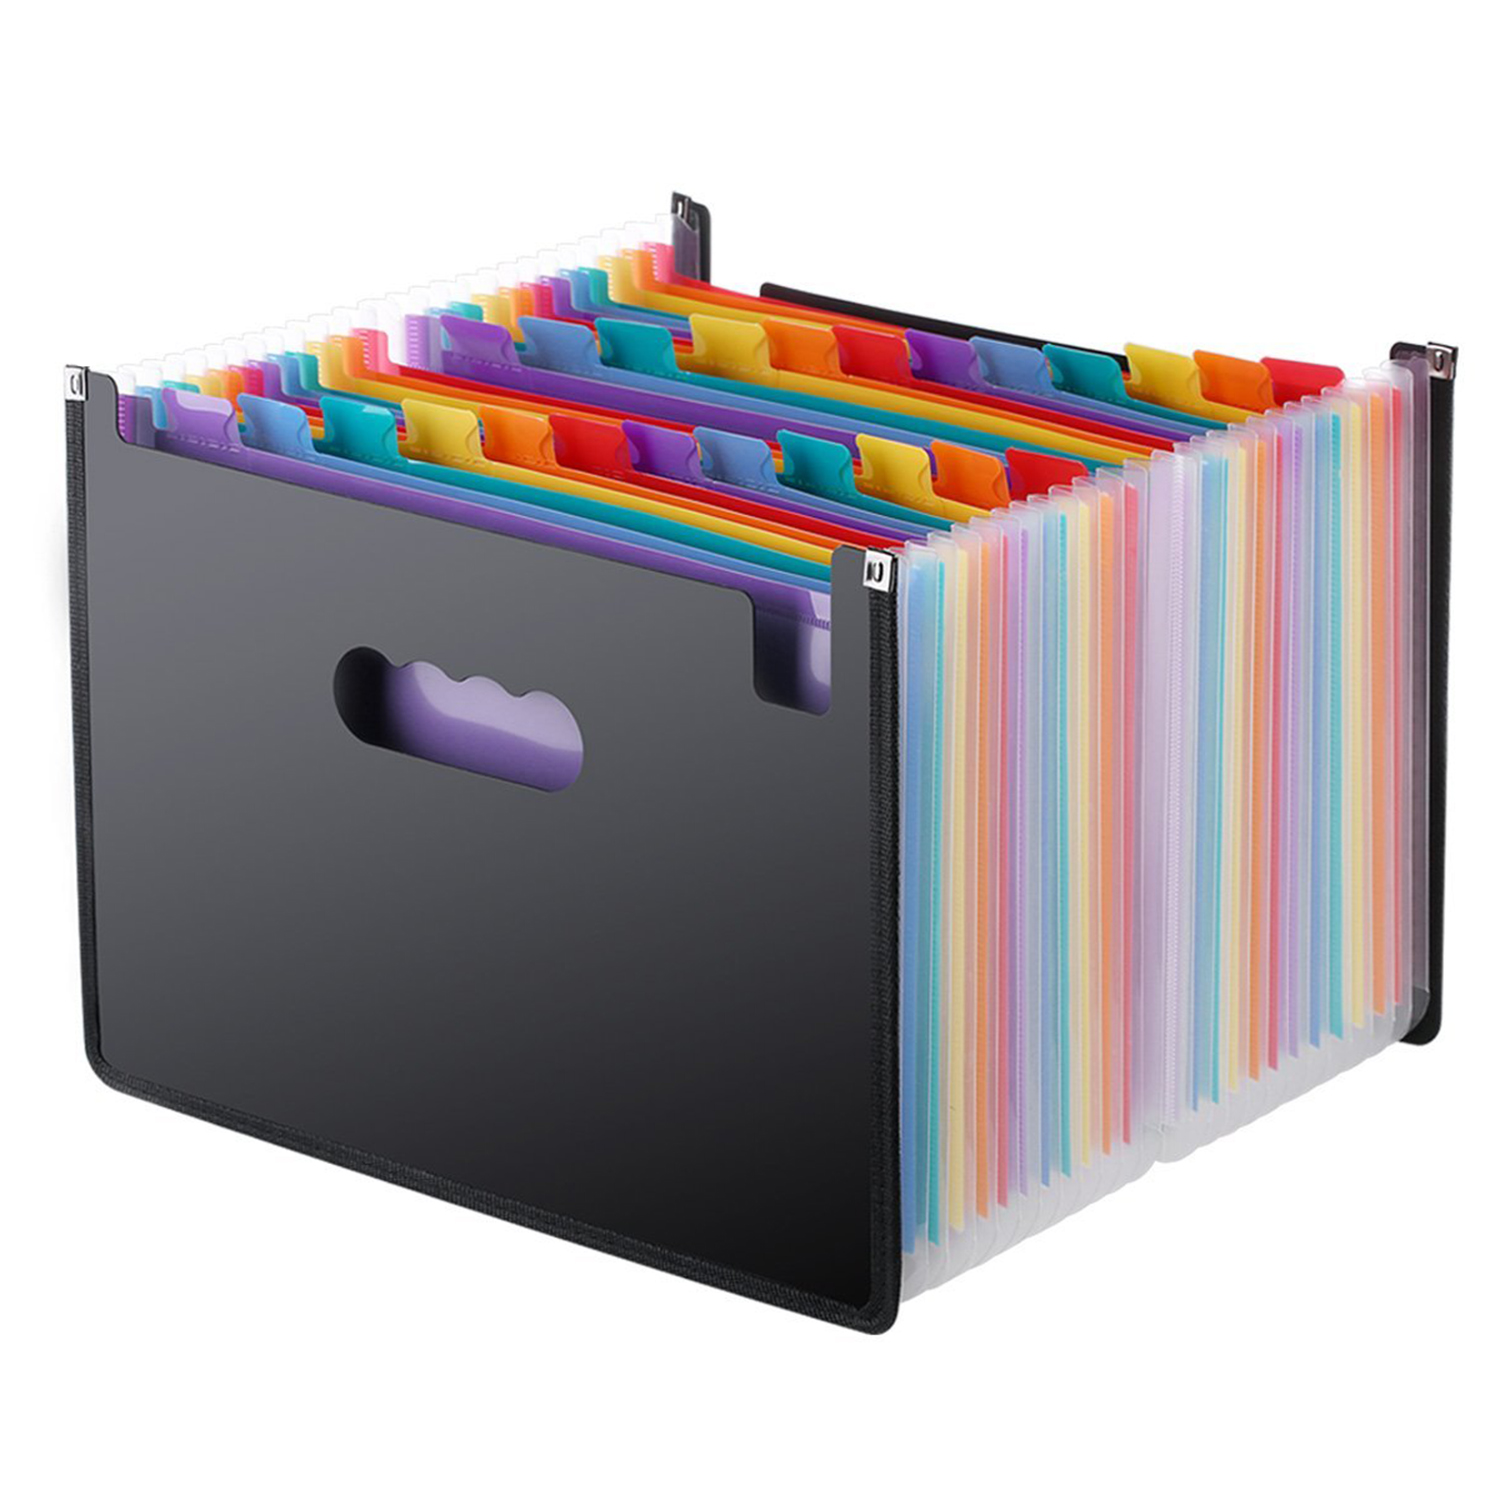 Expanding File Folder 24 Pockets, black Accordion A4 folderExpanding File Folder 24 Pockets, black Accordion A4 folder